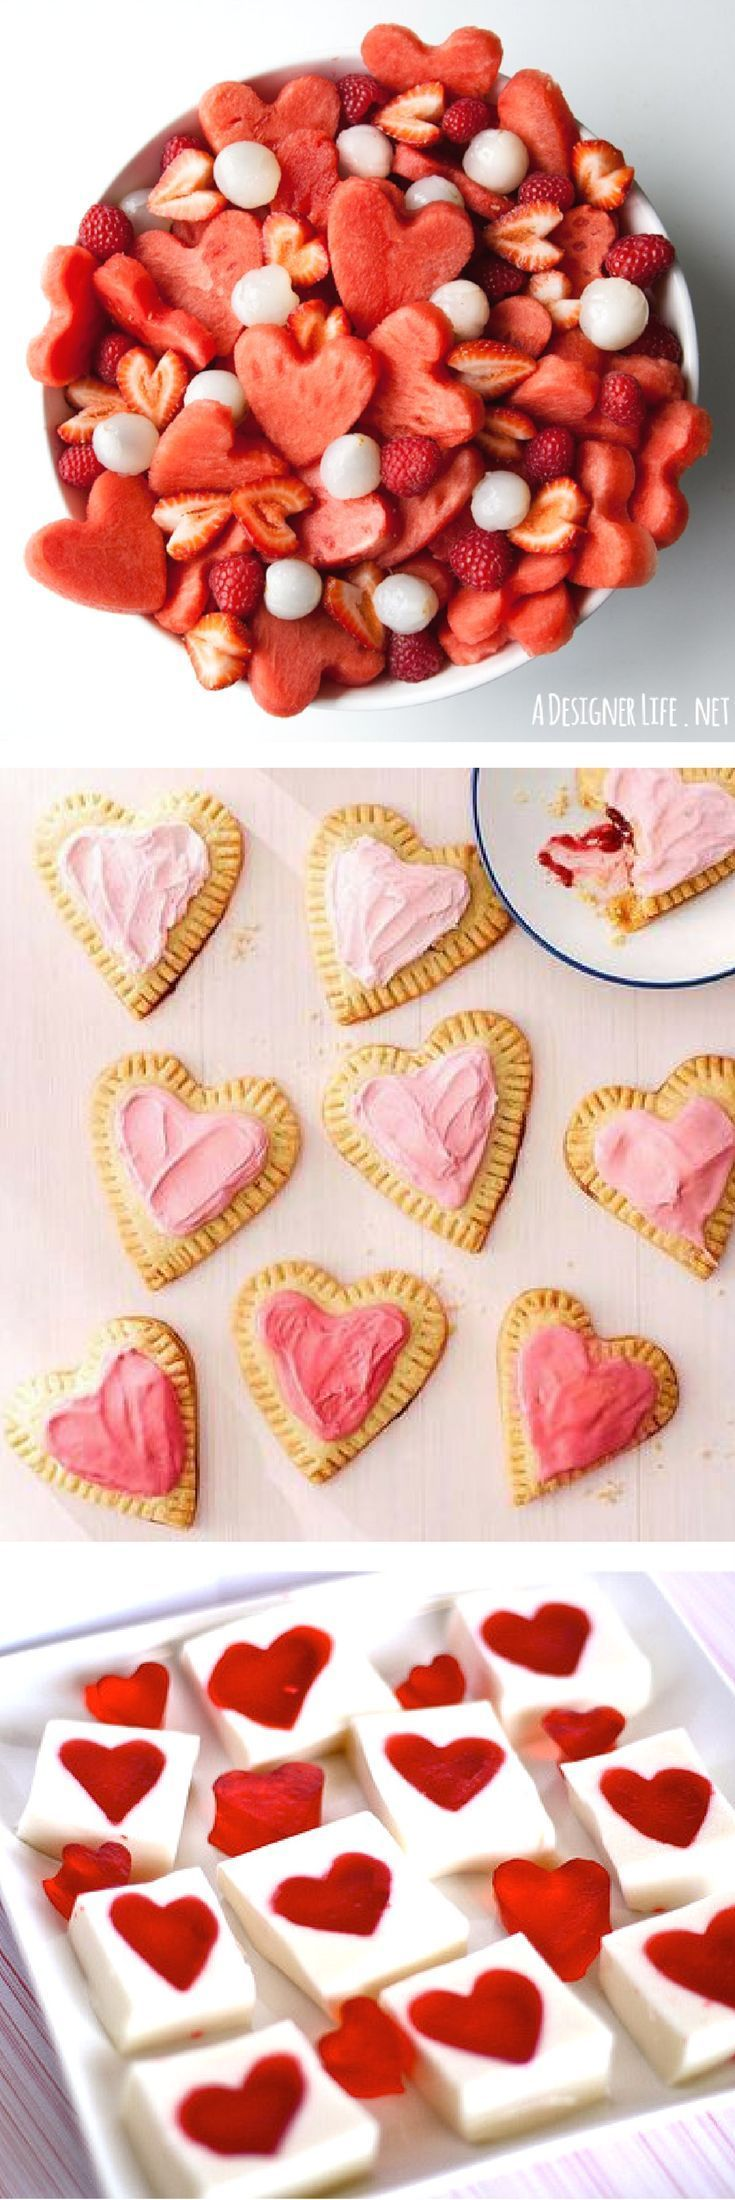 50 Valentine S Day Food Ideas For Kids Fun Recipes For Breakfast